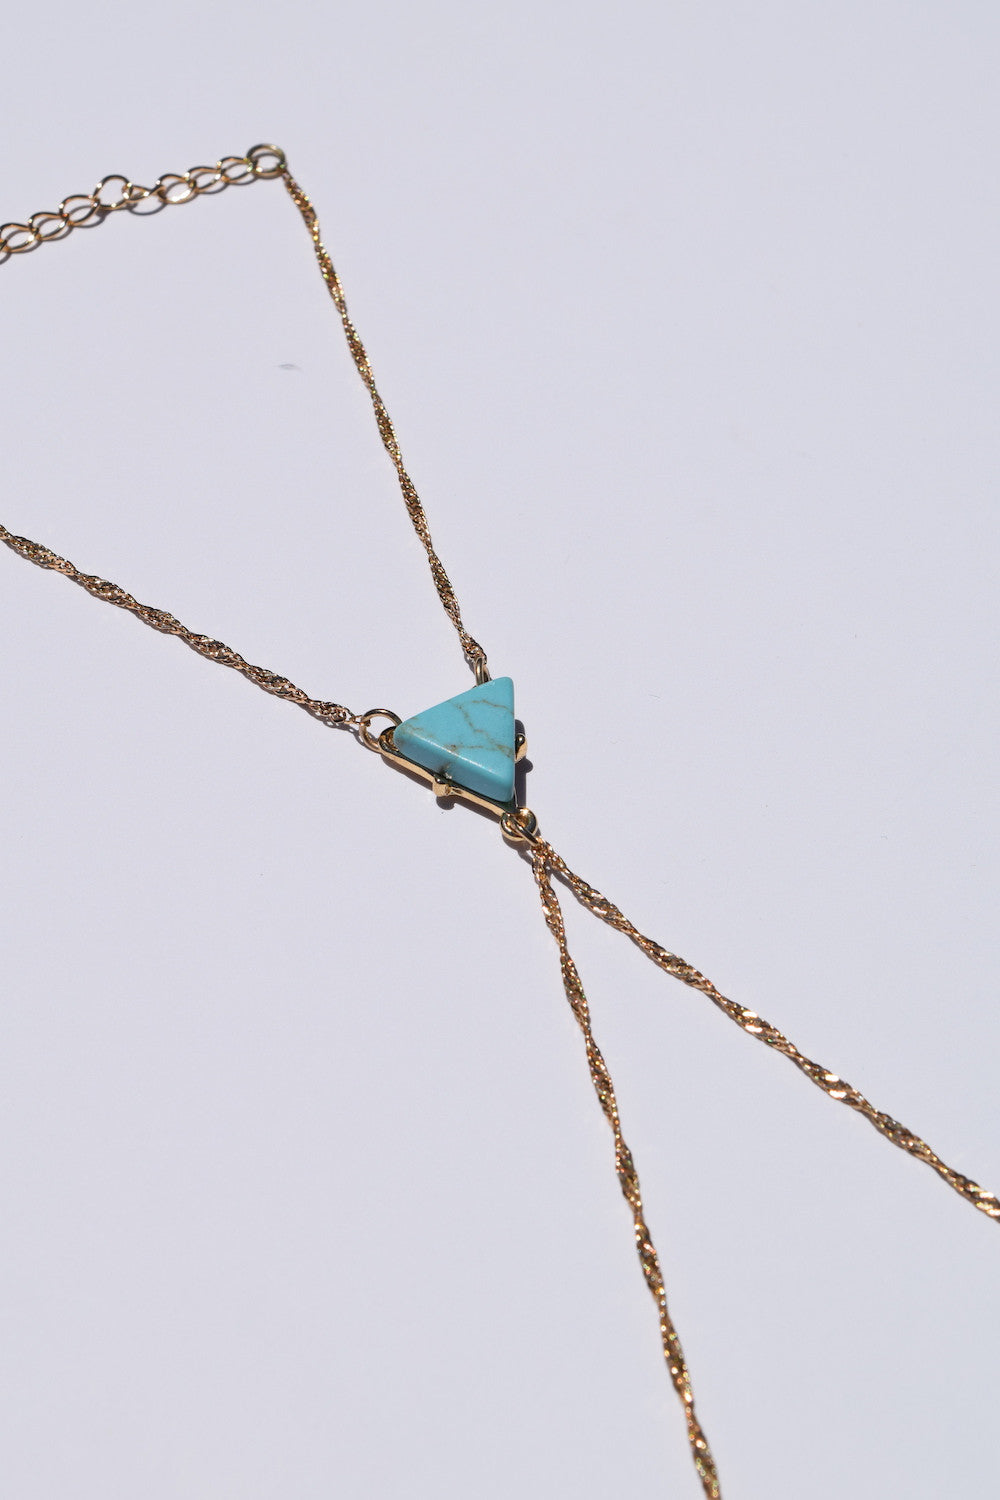 Zella Stone: Bracelet - Triangle Turquoise Hand Chain - H&D